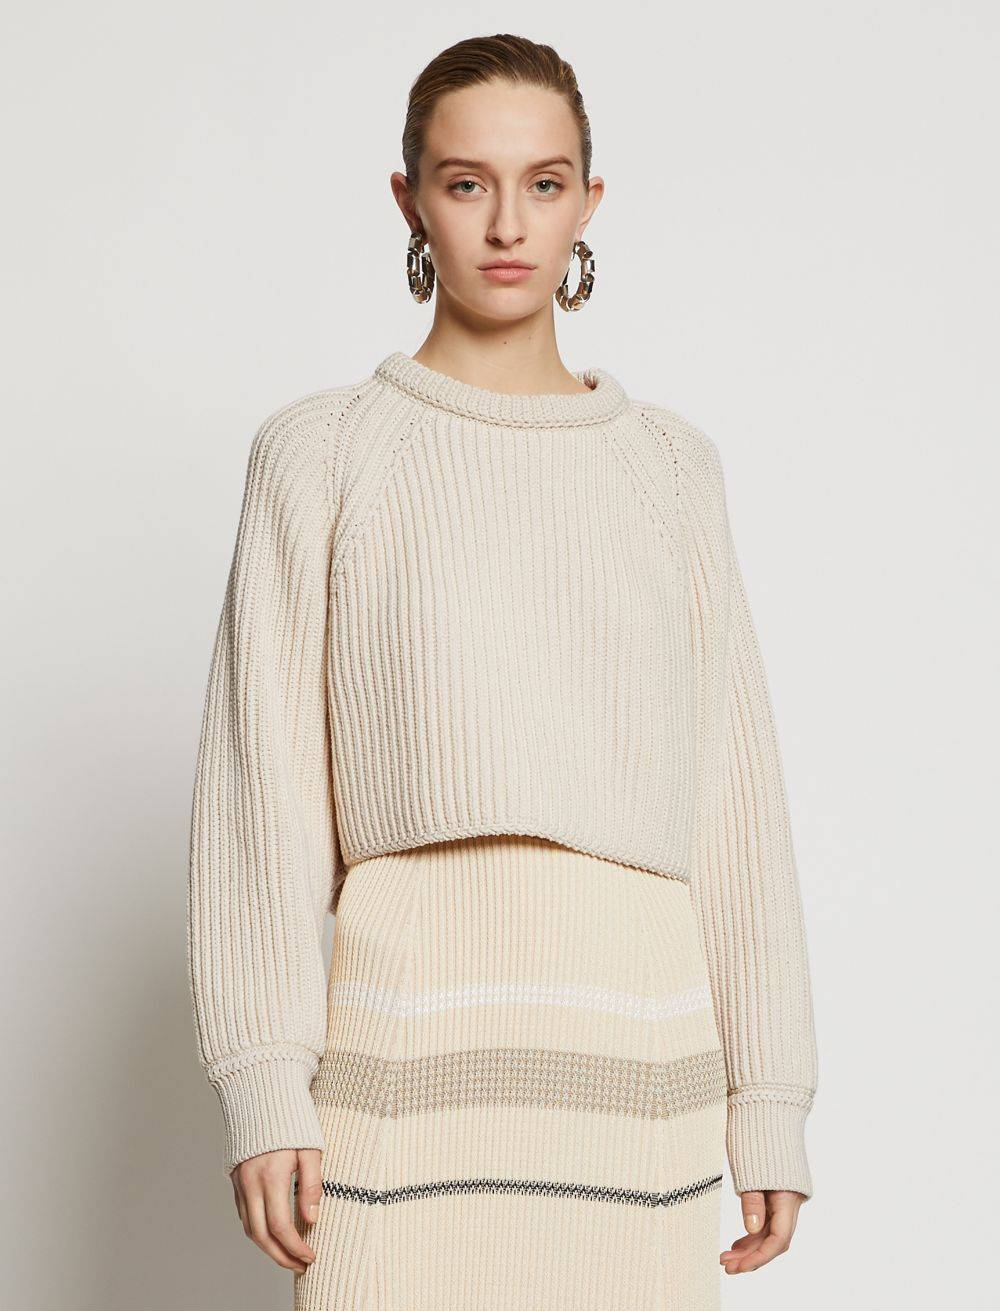 Proenza Schouler Chunky Cotton Rib Sweater ecru/white L